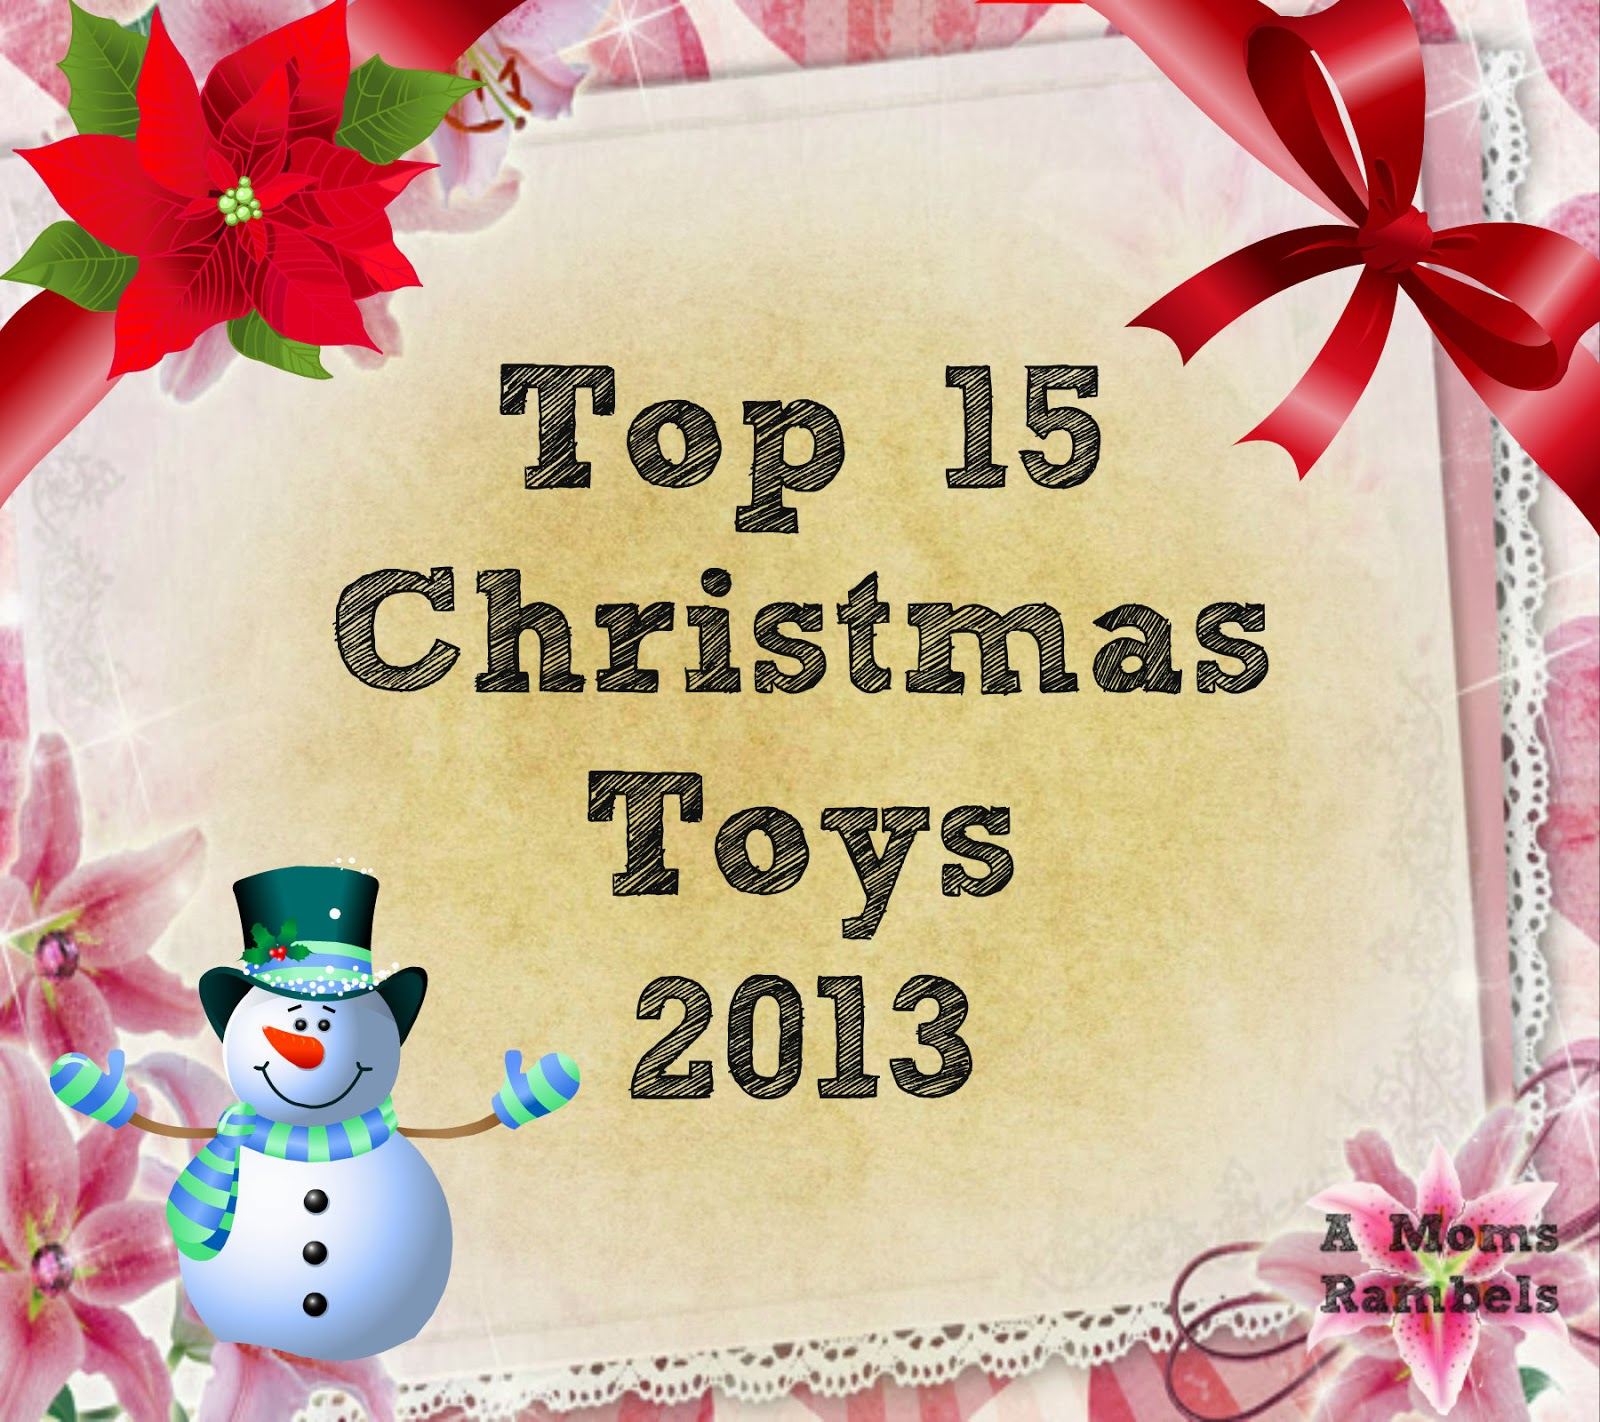 Christmas Toys 2013 : A mom s rambles top christmas toys